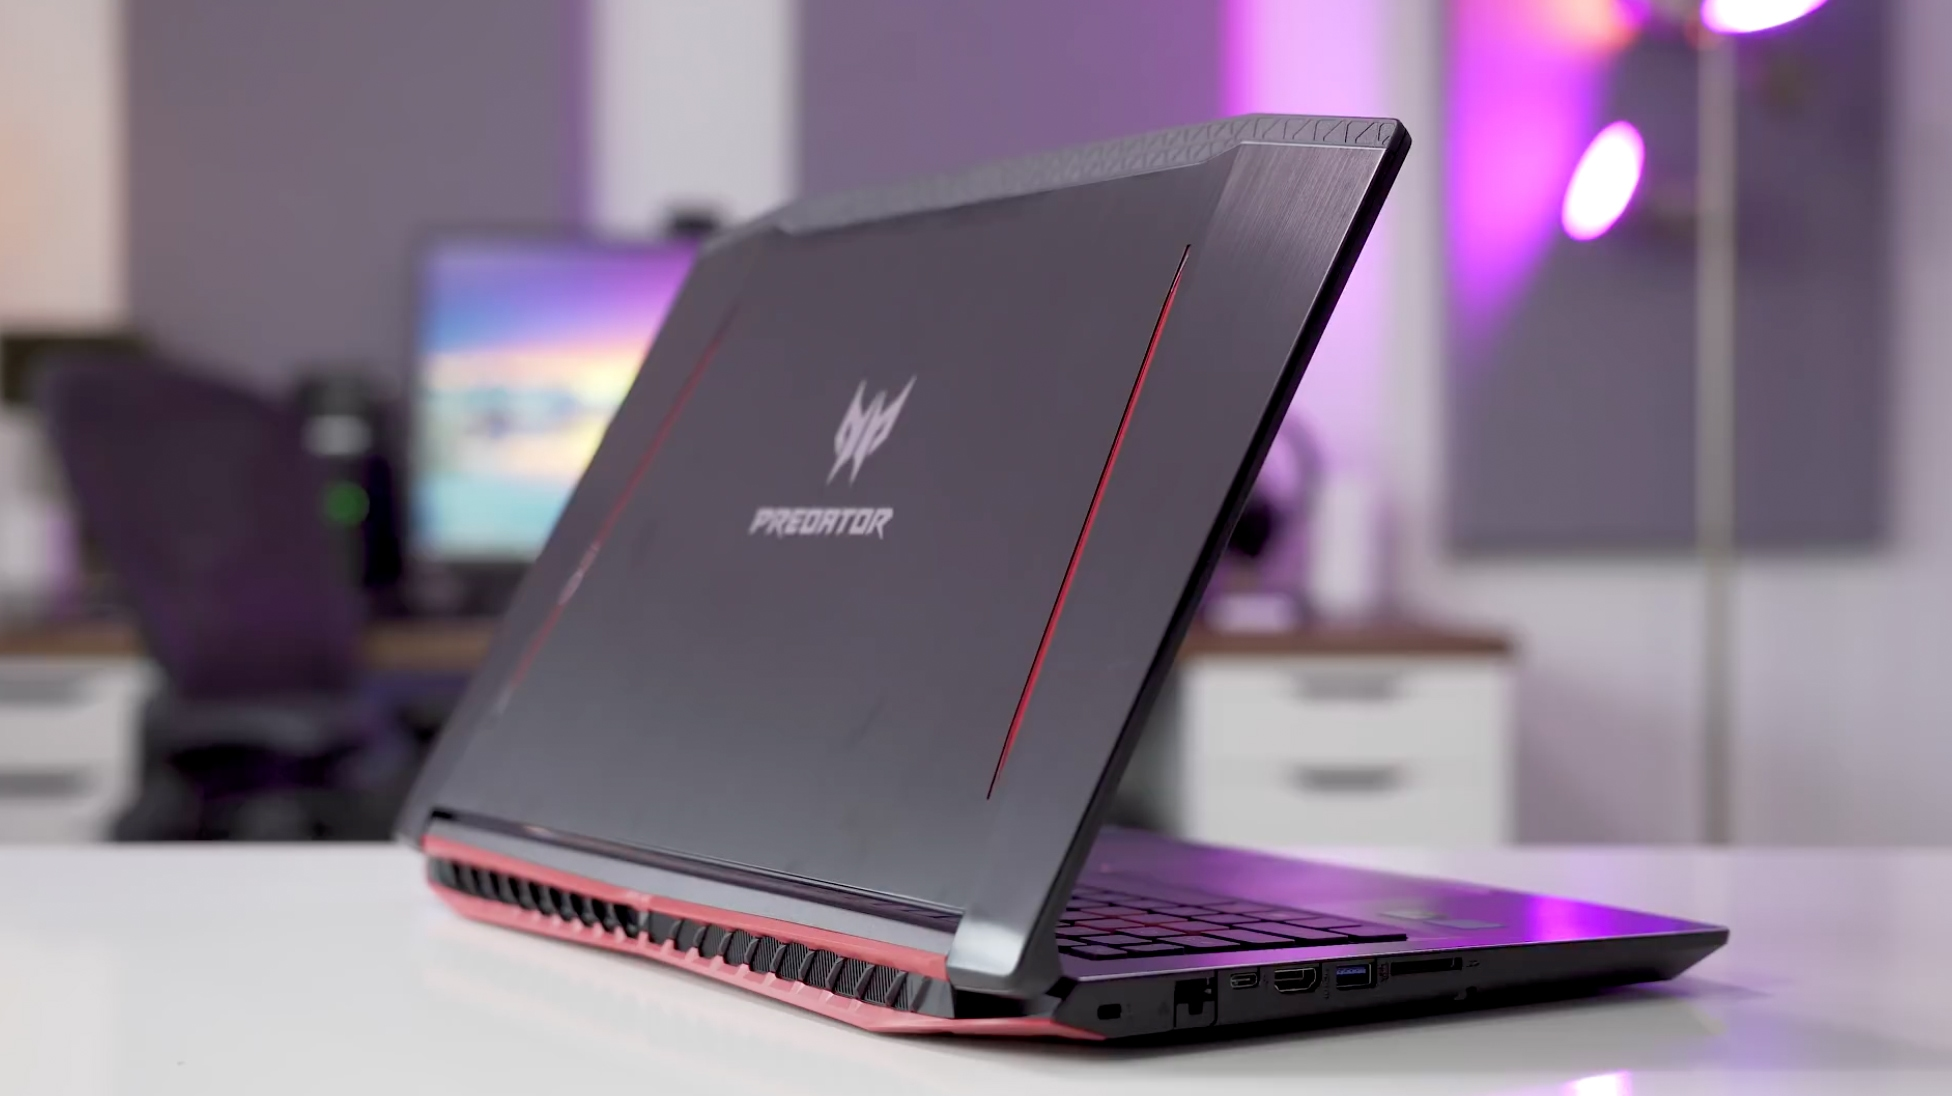 Acer Predator G3 Helio 300: Is It Still Worth It? - Buy Manual